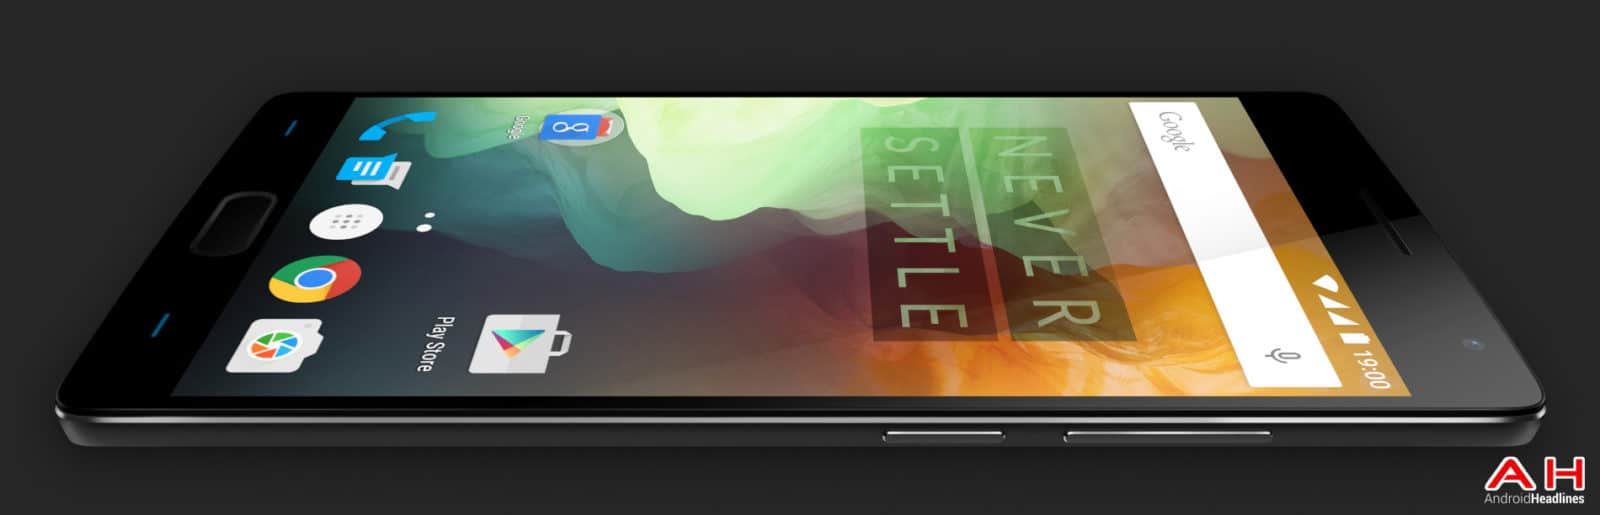 AH OnePlus Two Press Images 3-10